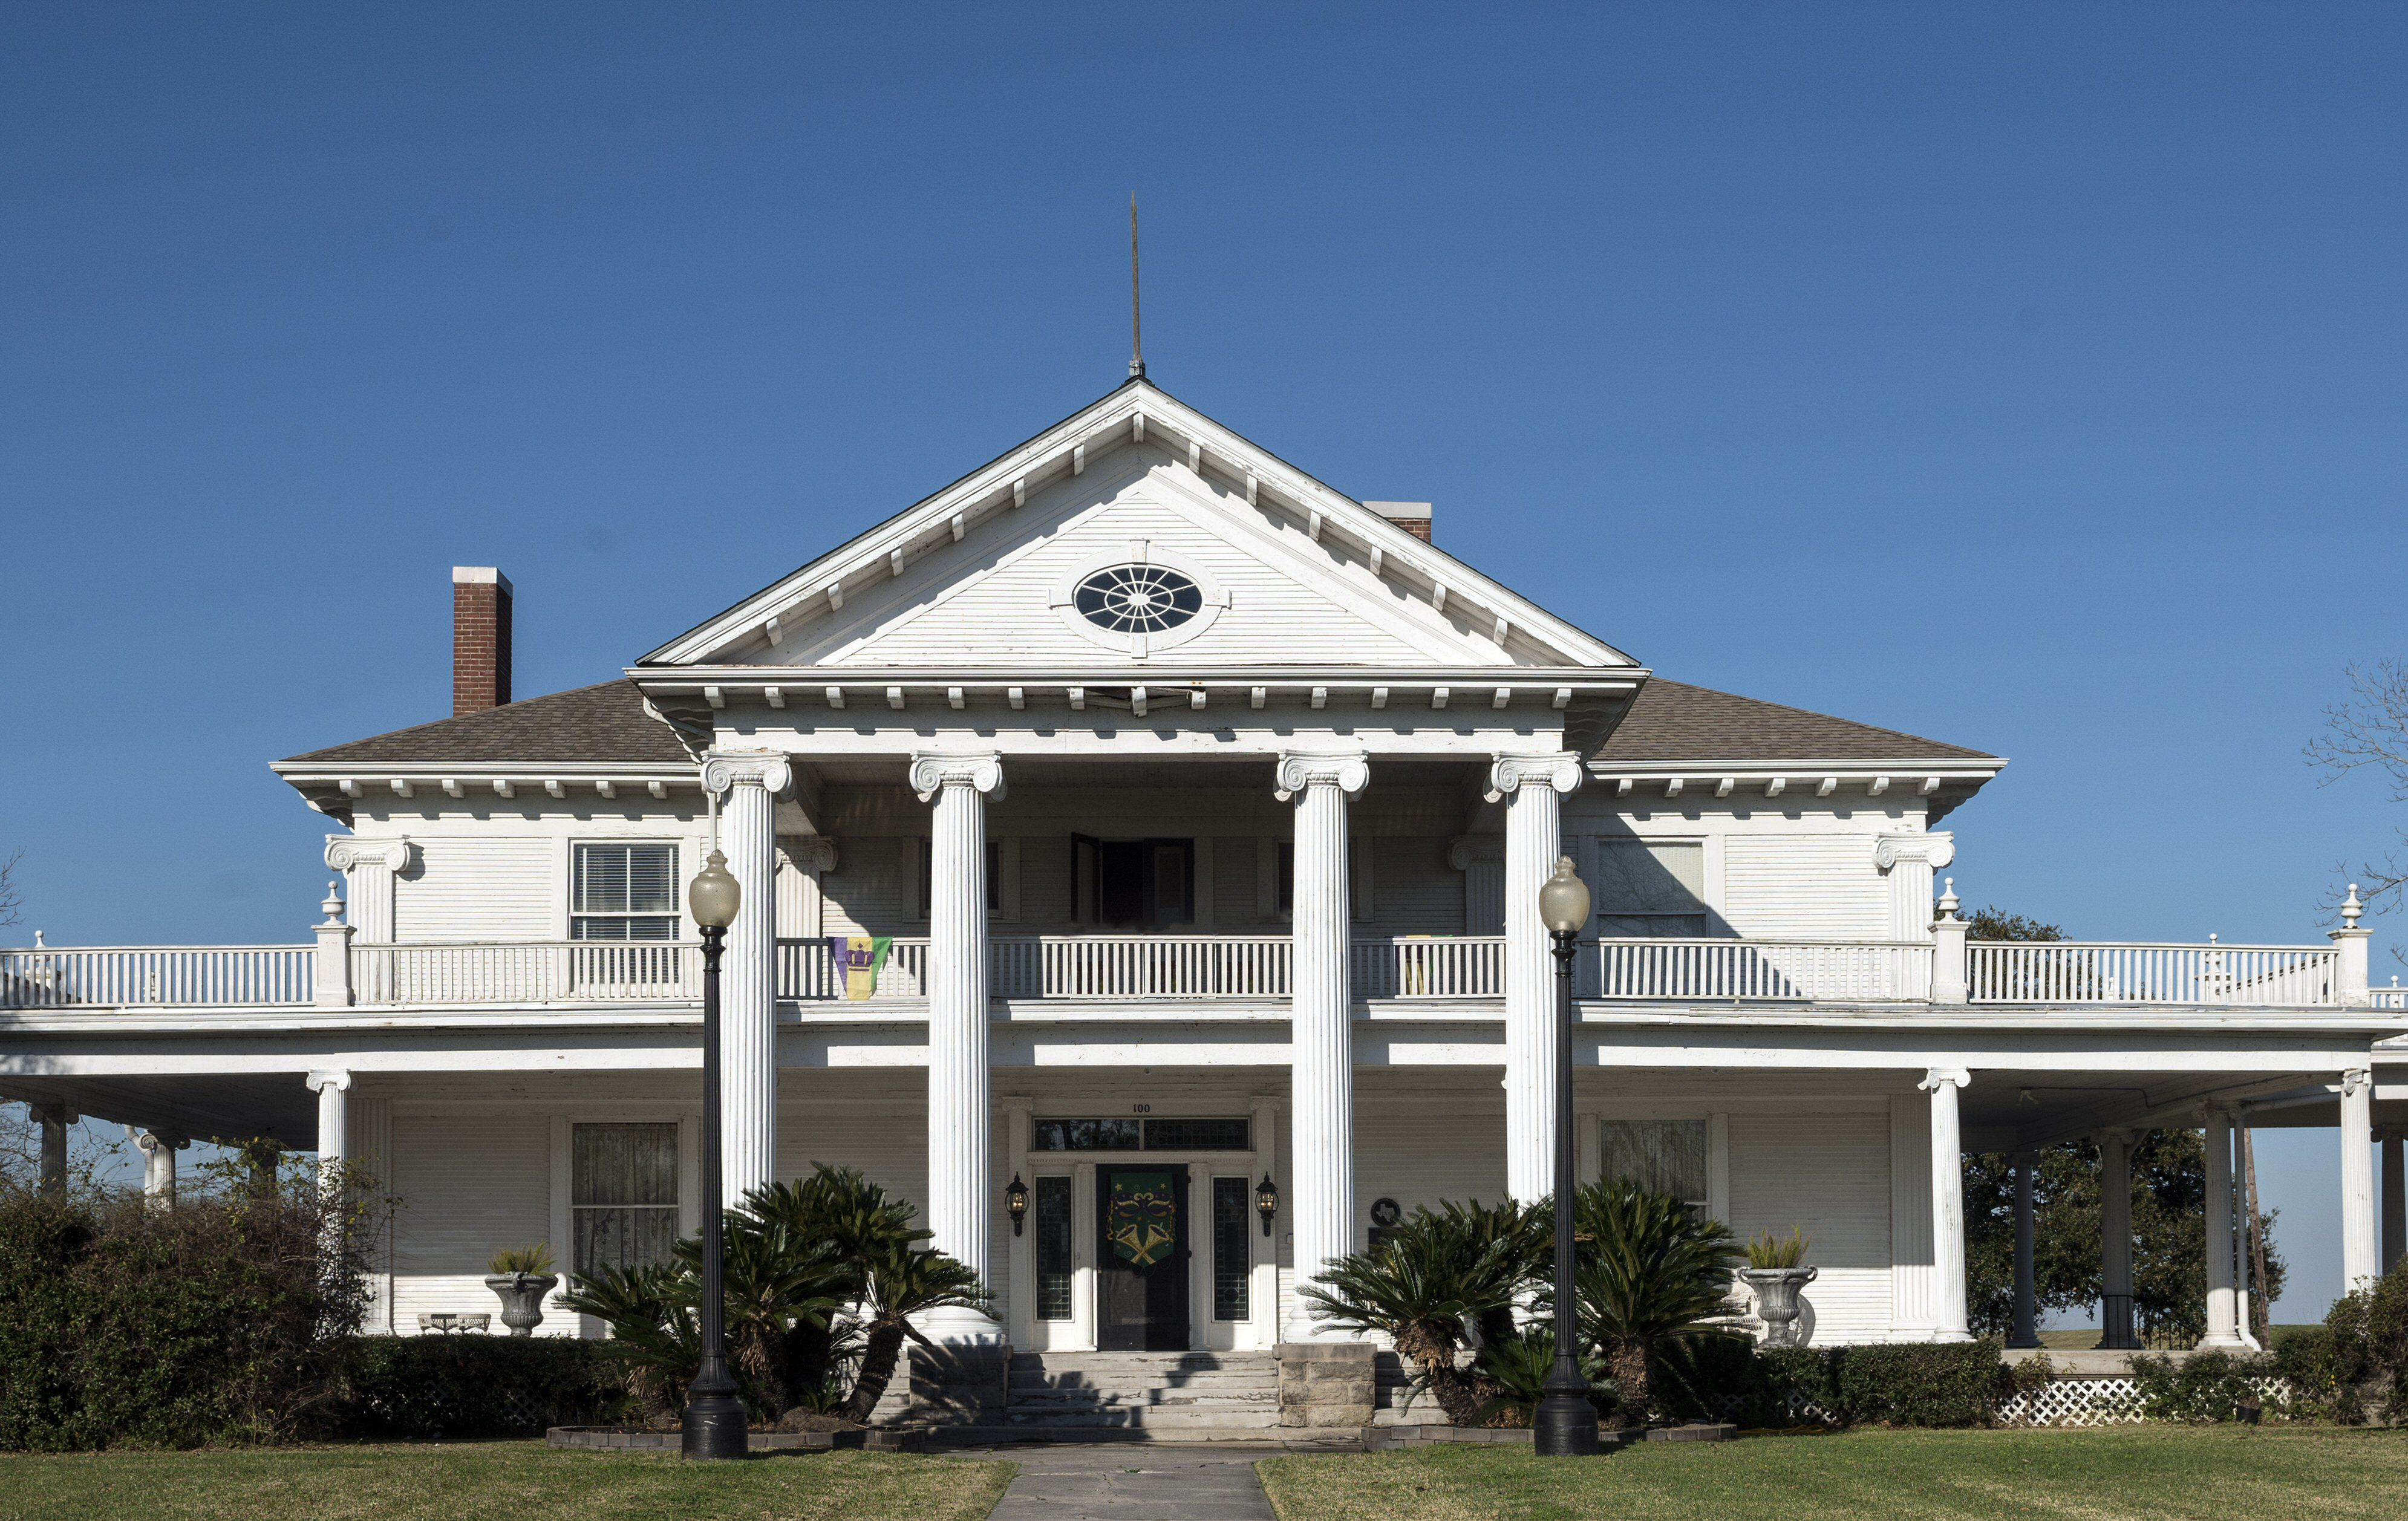 wide two story house with large portico, columns, and second floor wrap around porch